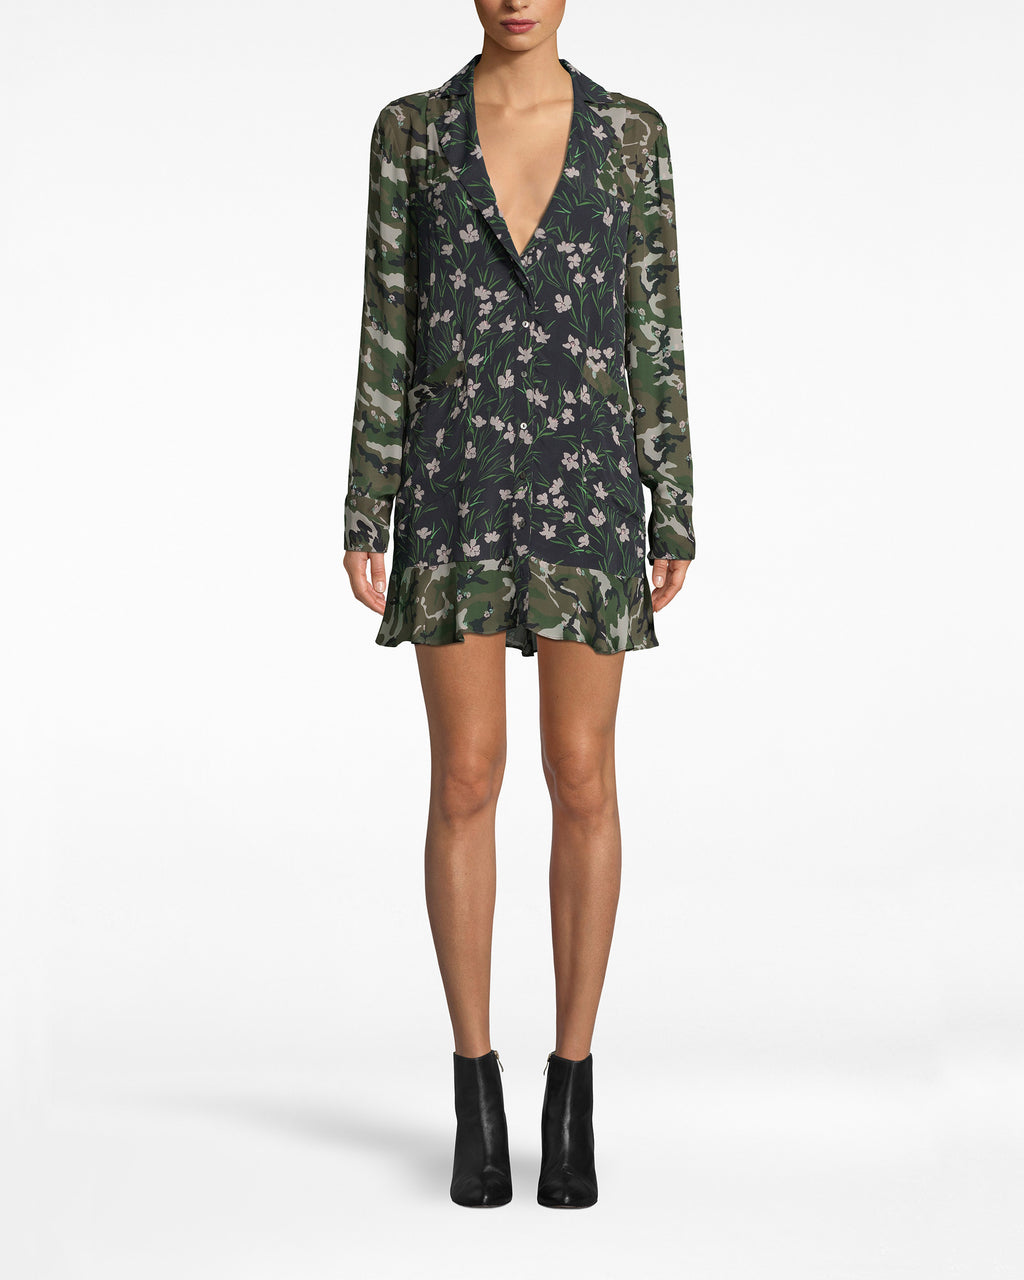 BN10179 - TULIP CAMOUFLAGE BLAZER DRESS - dresses - short - Better together than apart. This blazer dress, boasting our new Tulip camo print, infuses tomboy into feminine. Featuring a deep v-neck and ruffled hem.